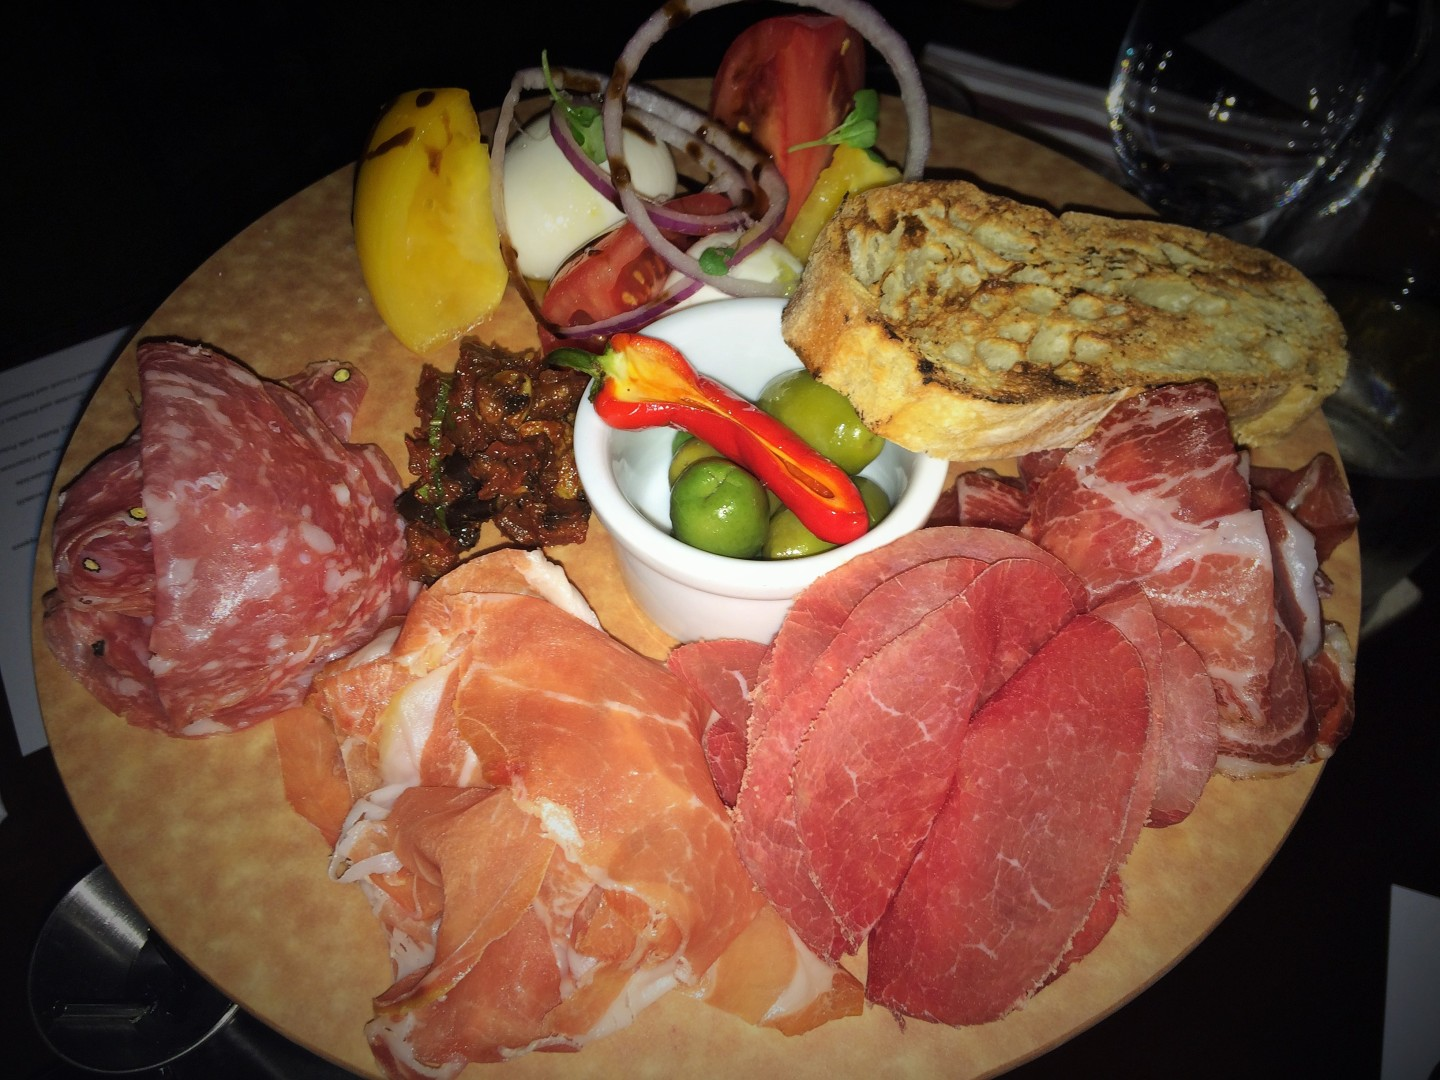 An antipasti platter with cured Italian meats, house-pickled peppers, olives, freshly made mozzarella, heirloom tomatoes, and caponata.